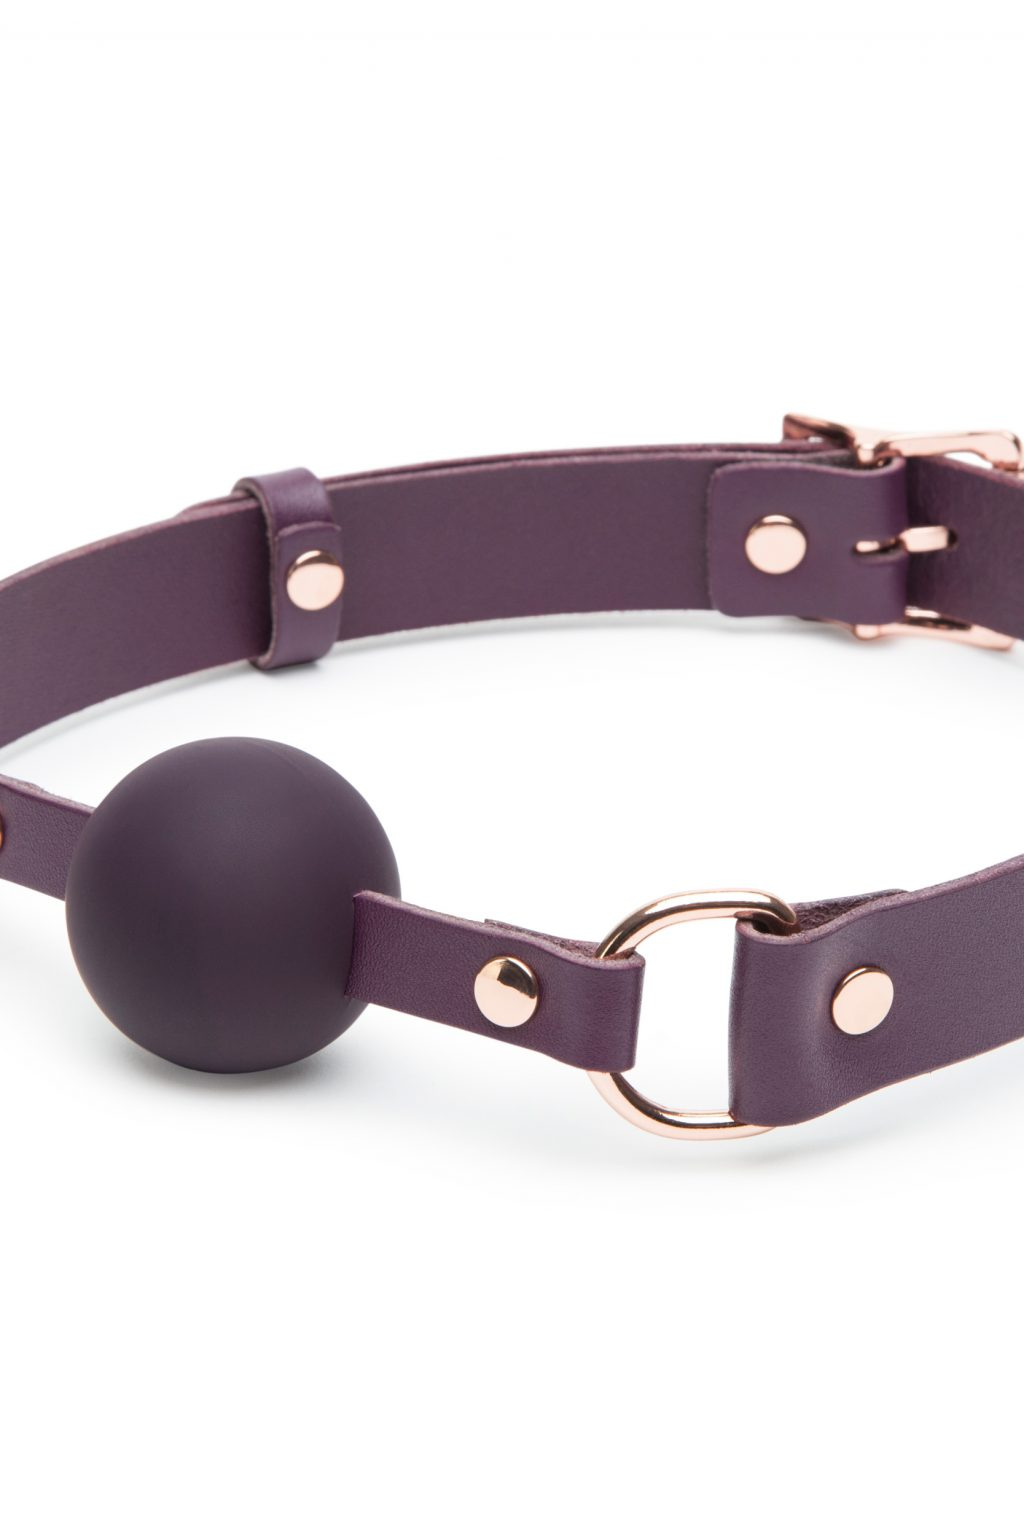 Freed Cherished Collection Leather Ball Gag